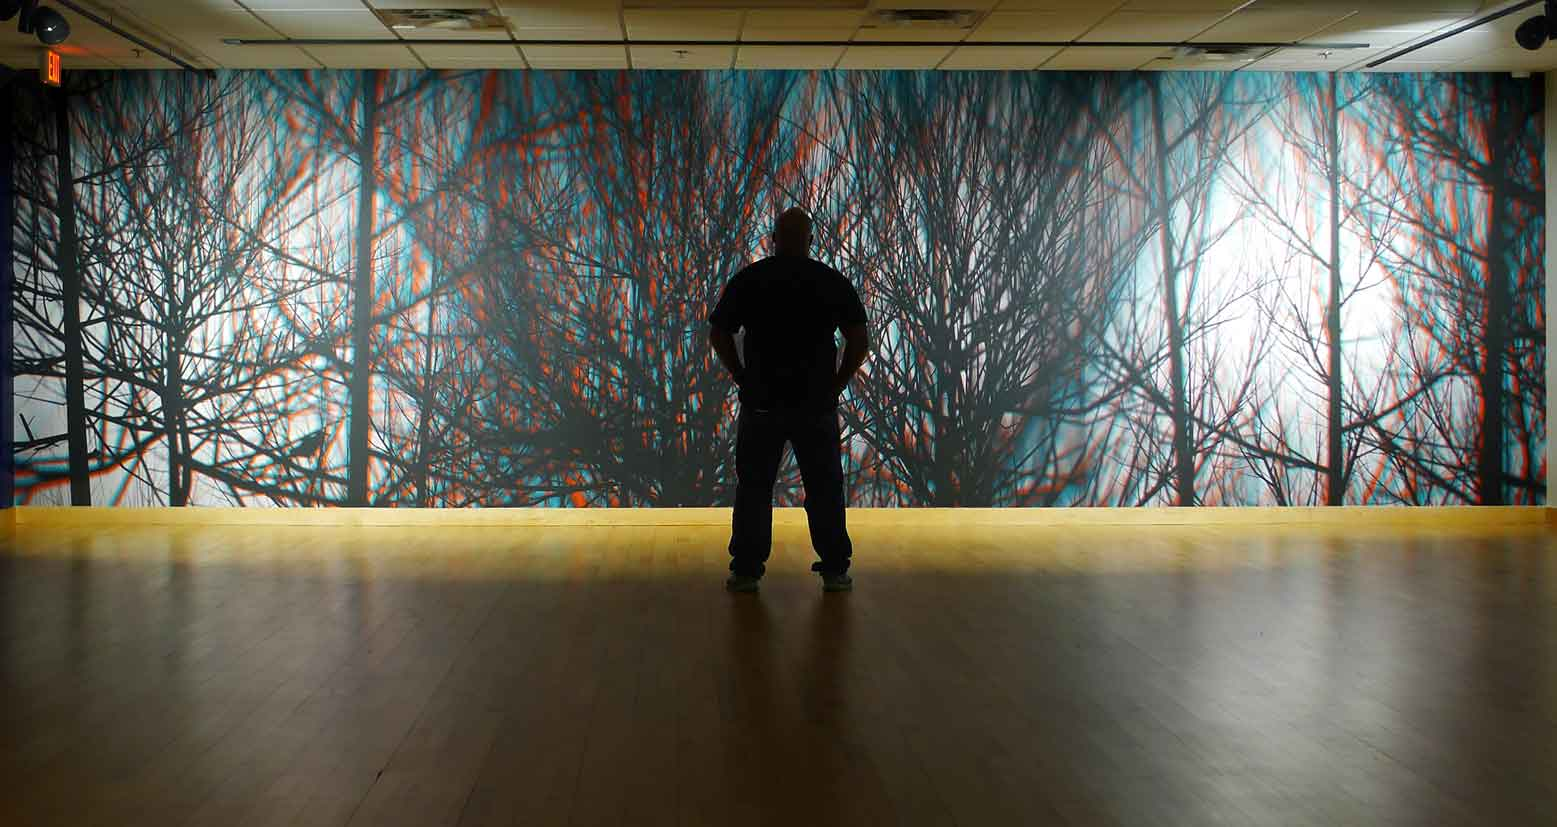 sterea skia - anaglyphic shadow pictures and environments by Tim ...